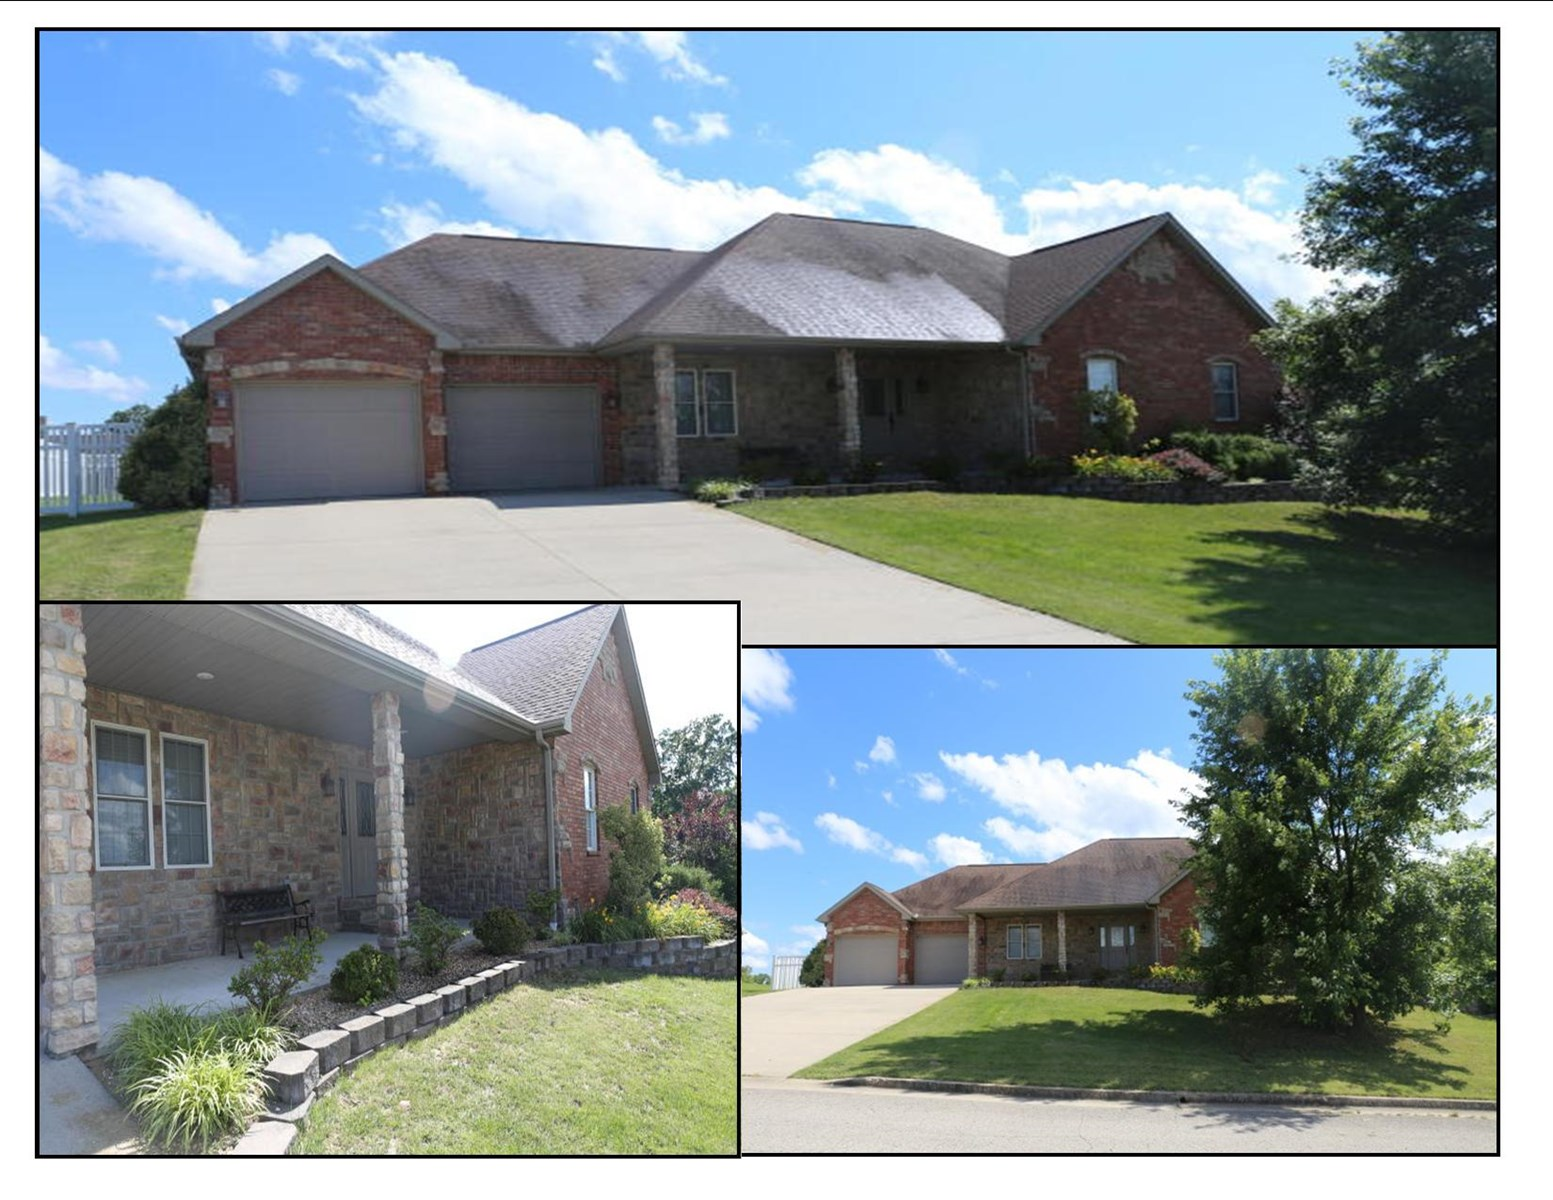 Custom Home in Millwood Subdivision, West Plains, MO - 4 BR